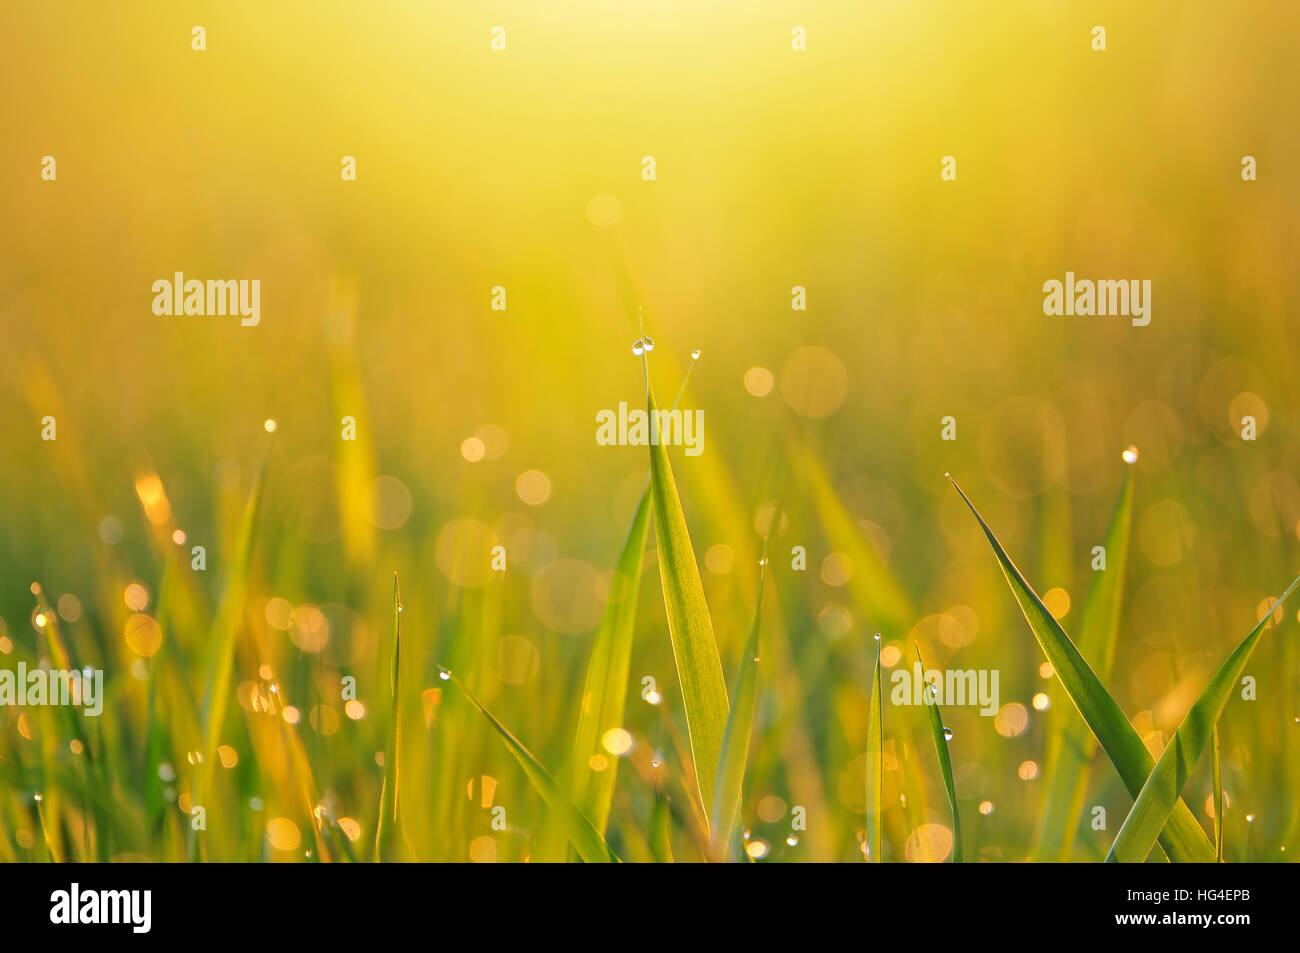 Grass and morning dew in warm early morning light - Stock Image